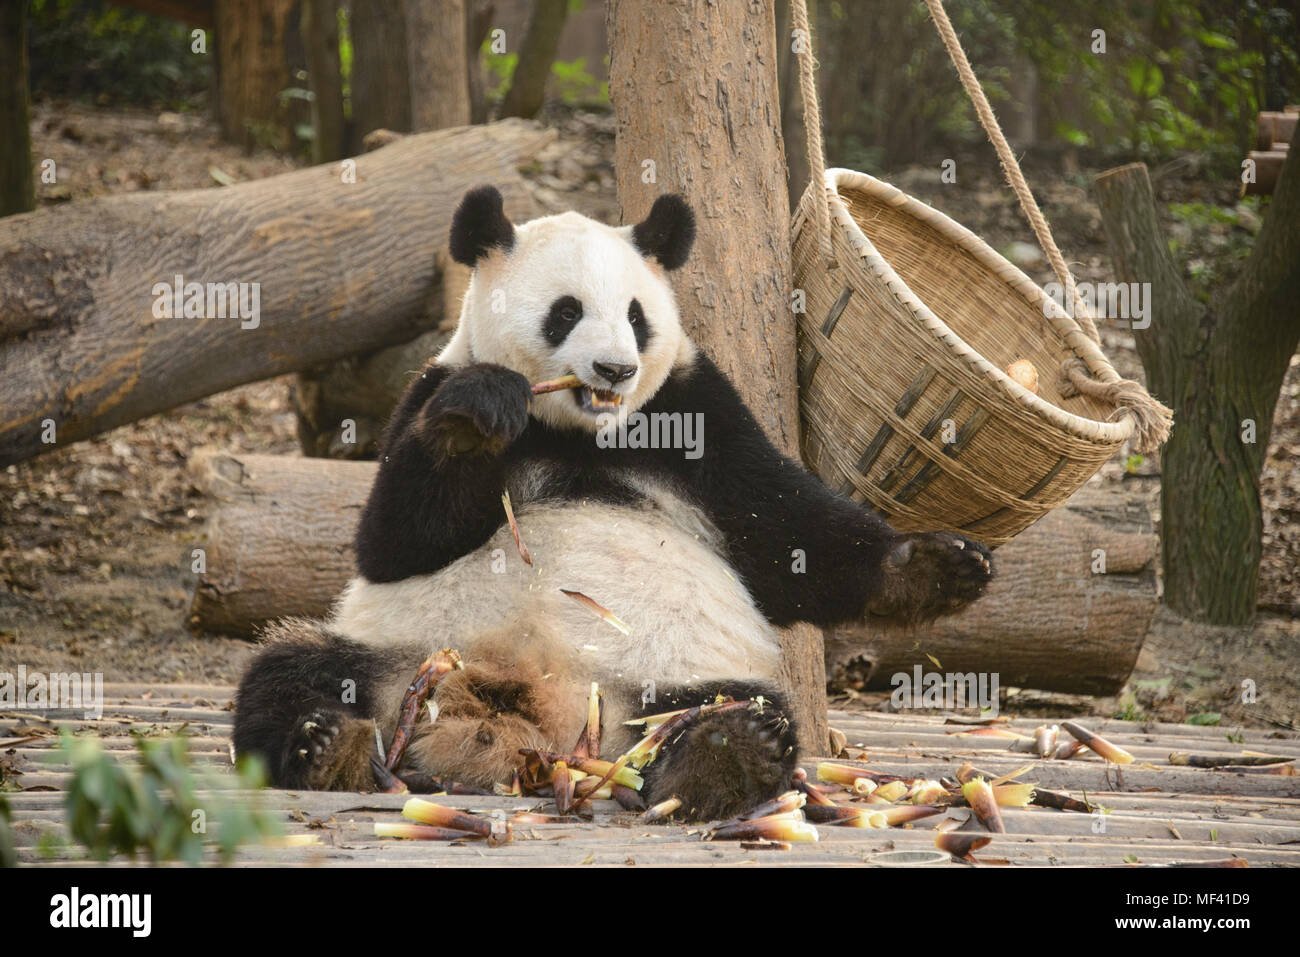 Giant panda at the Chengdu Research Base of Giant Panda Breeding in Chengdu, Sichuan, China - Stock Image